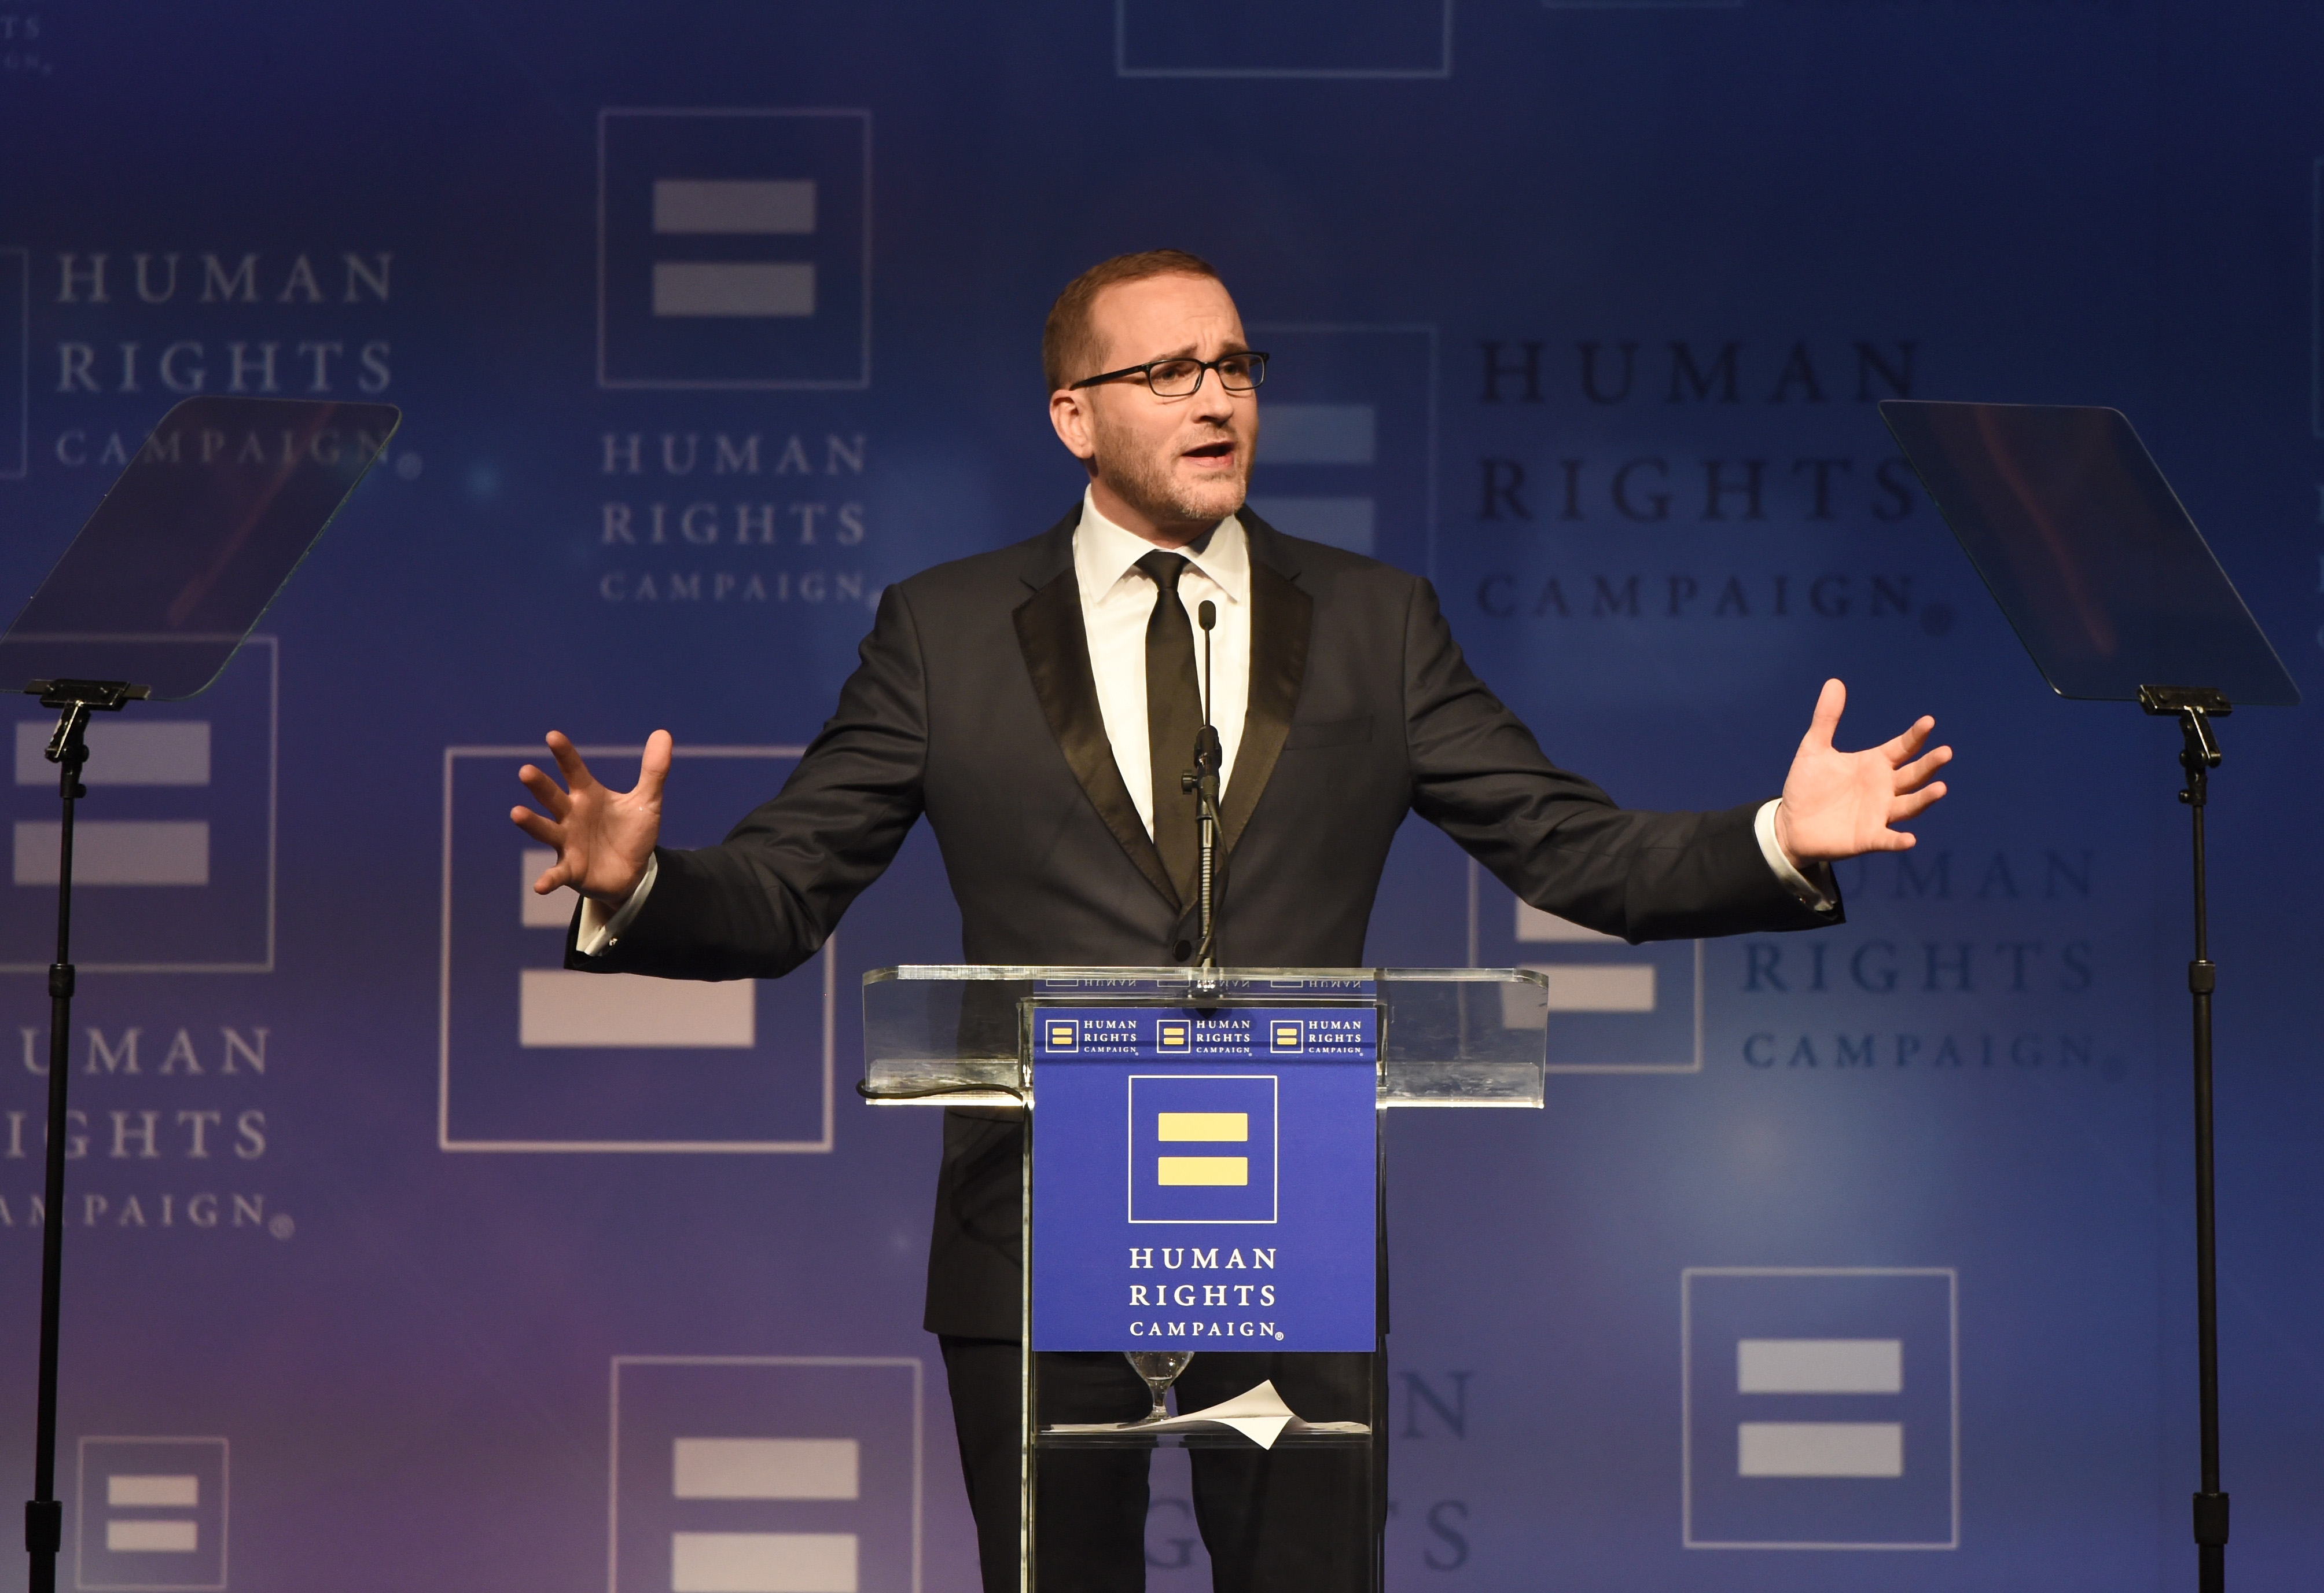 Human Rights Campaign President Chad Griffin speaks onstage at The Human Rights Campaign 2017 Los Angeles Gala Dinner at JW Marriott Los Angeles at L.A. LIVE on March 18, 2017 in Los Angeles.